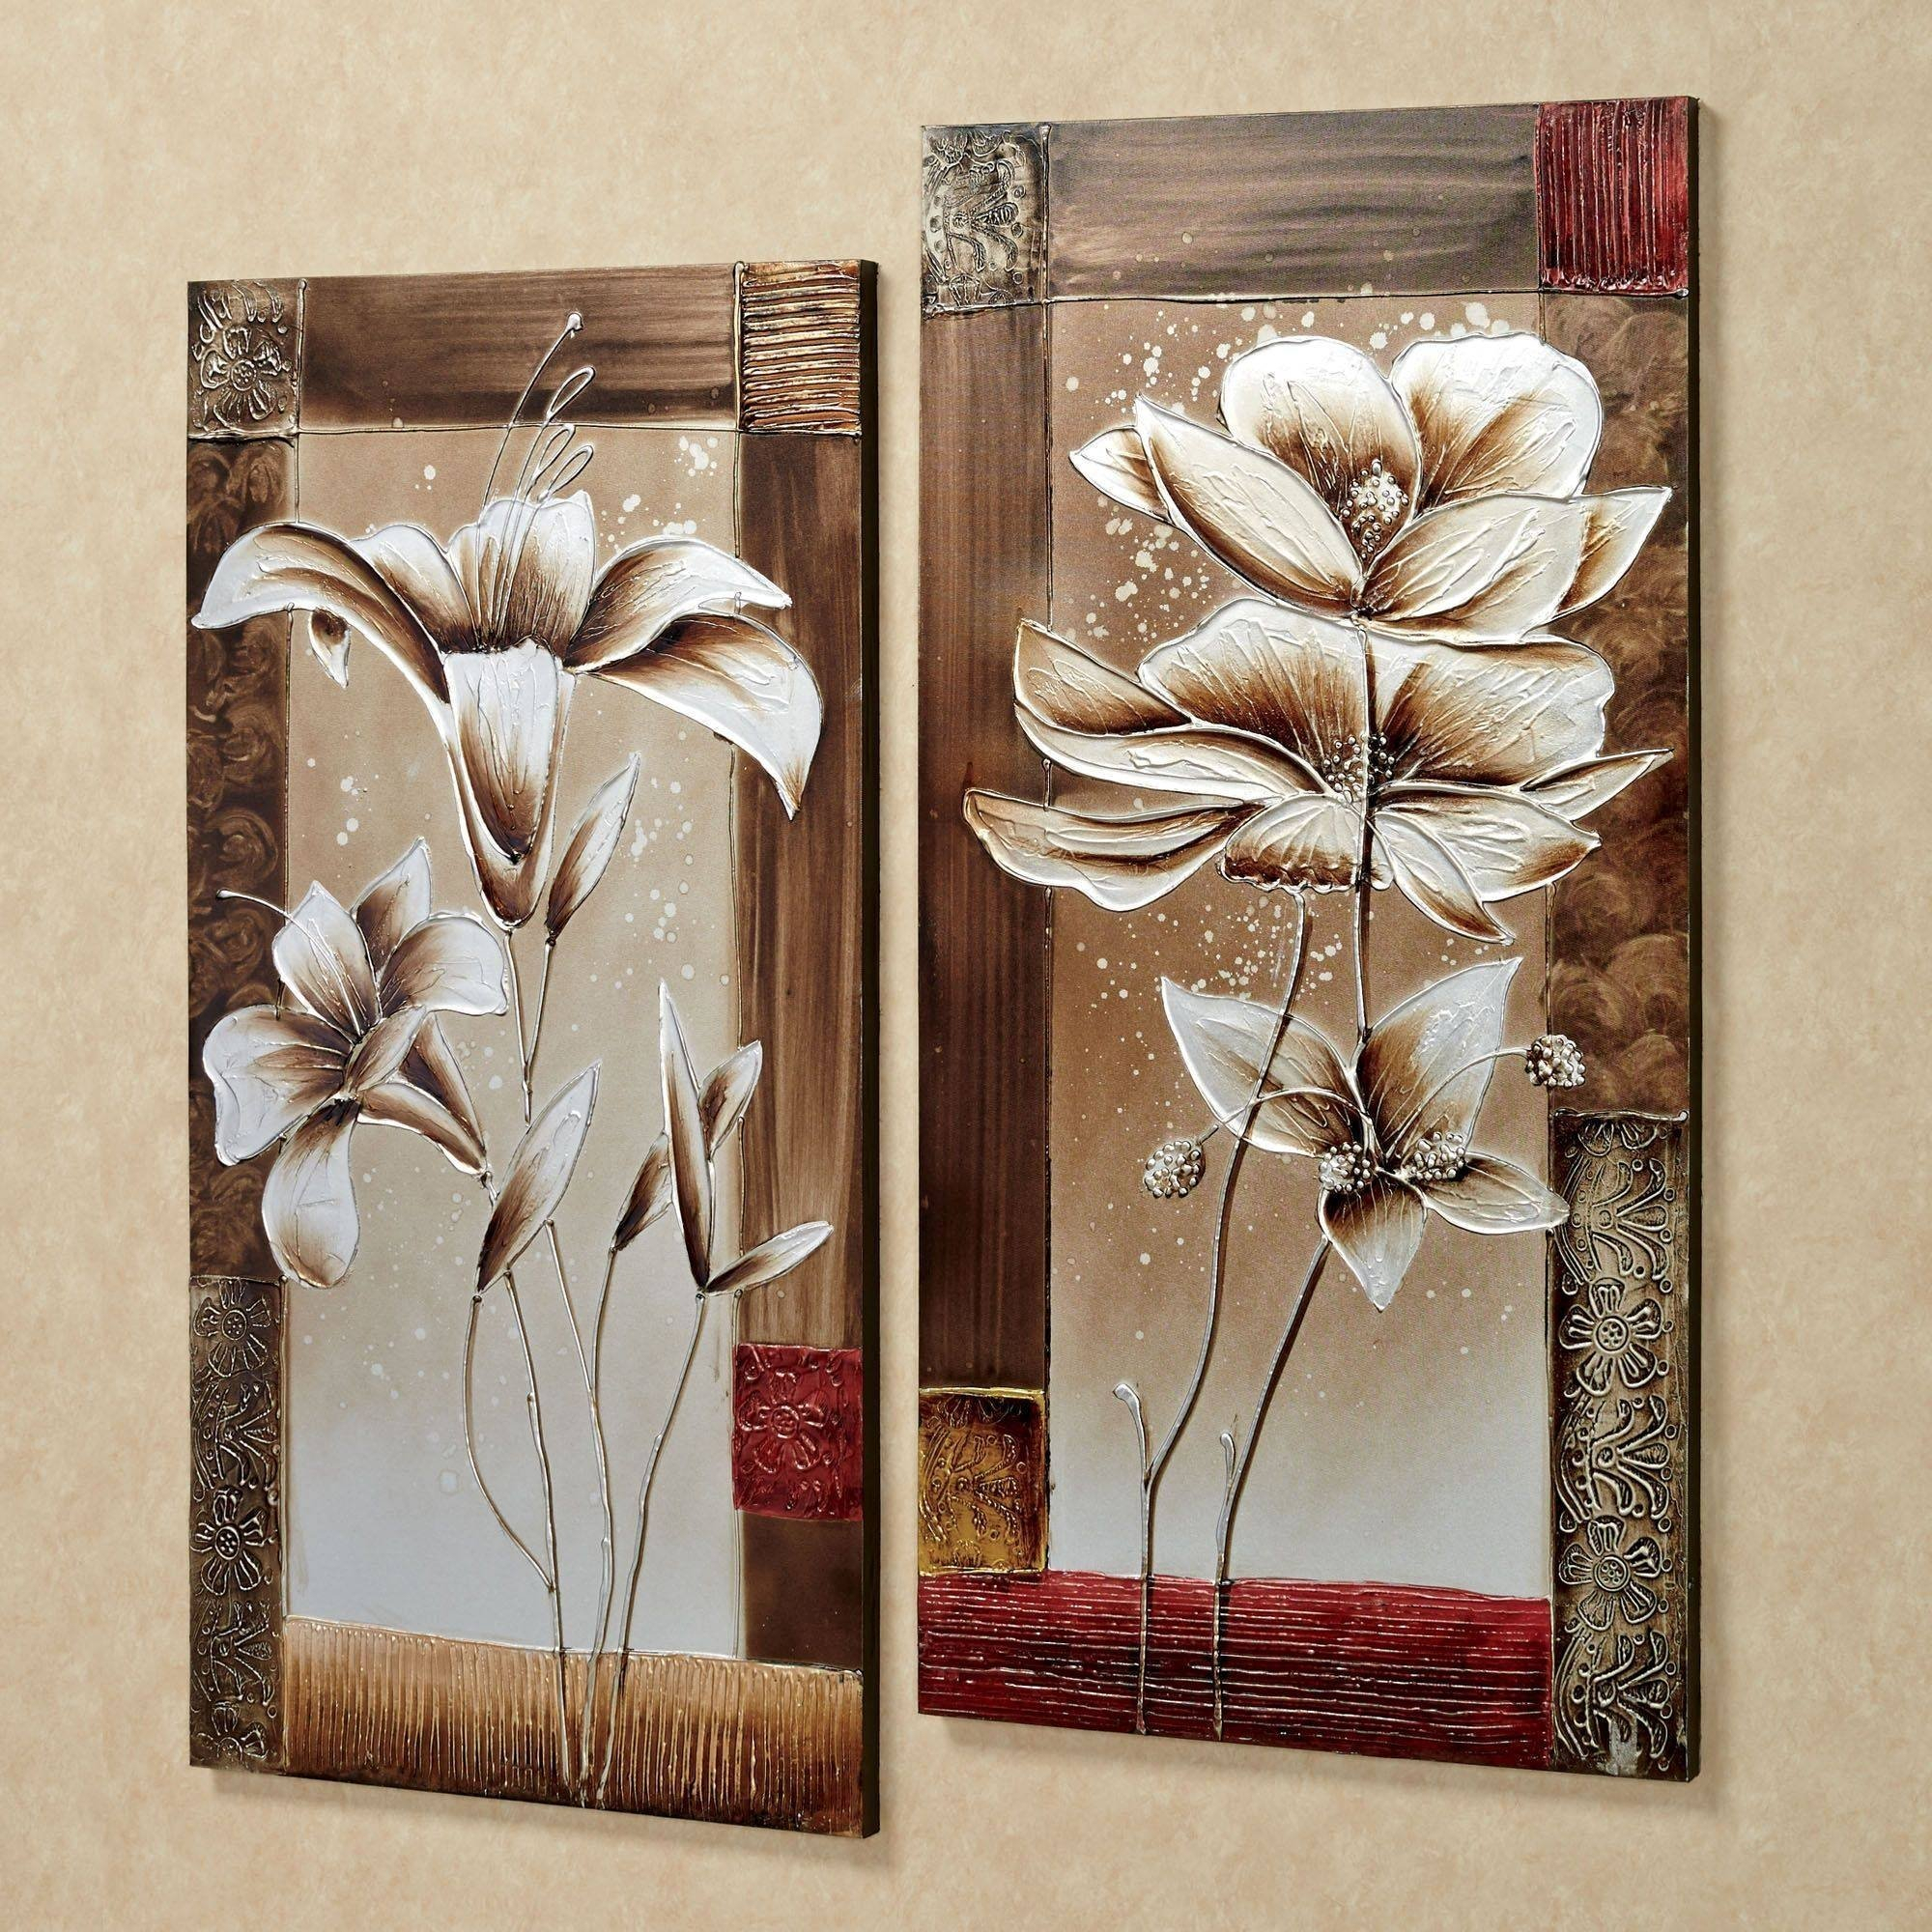 20 The Best Canvas Wall Art 3 Piece Sets Decorative Picture Within 4 Piece Metal Wall Plaque Decor Sets (View 21 of 30)